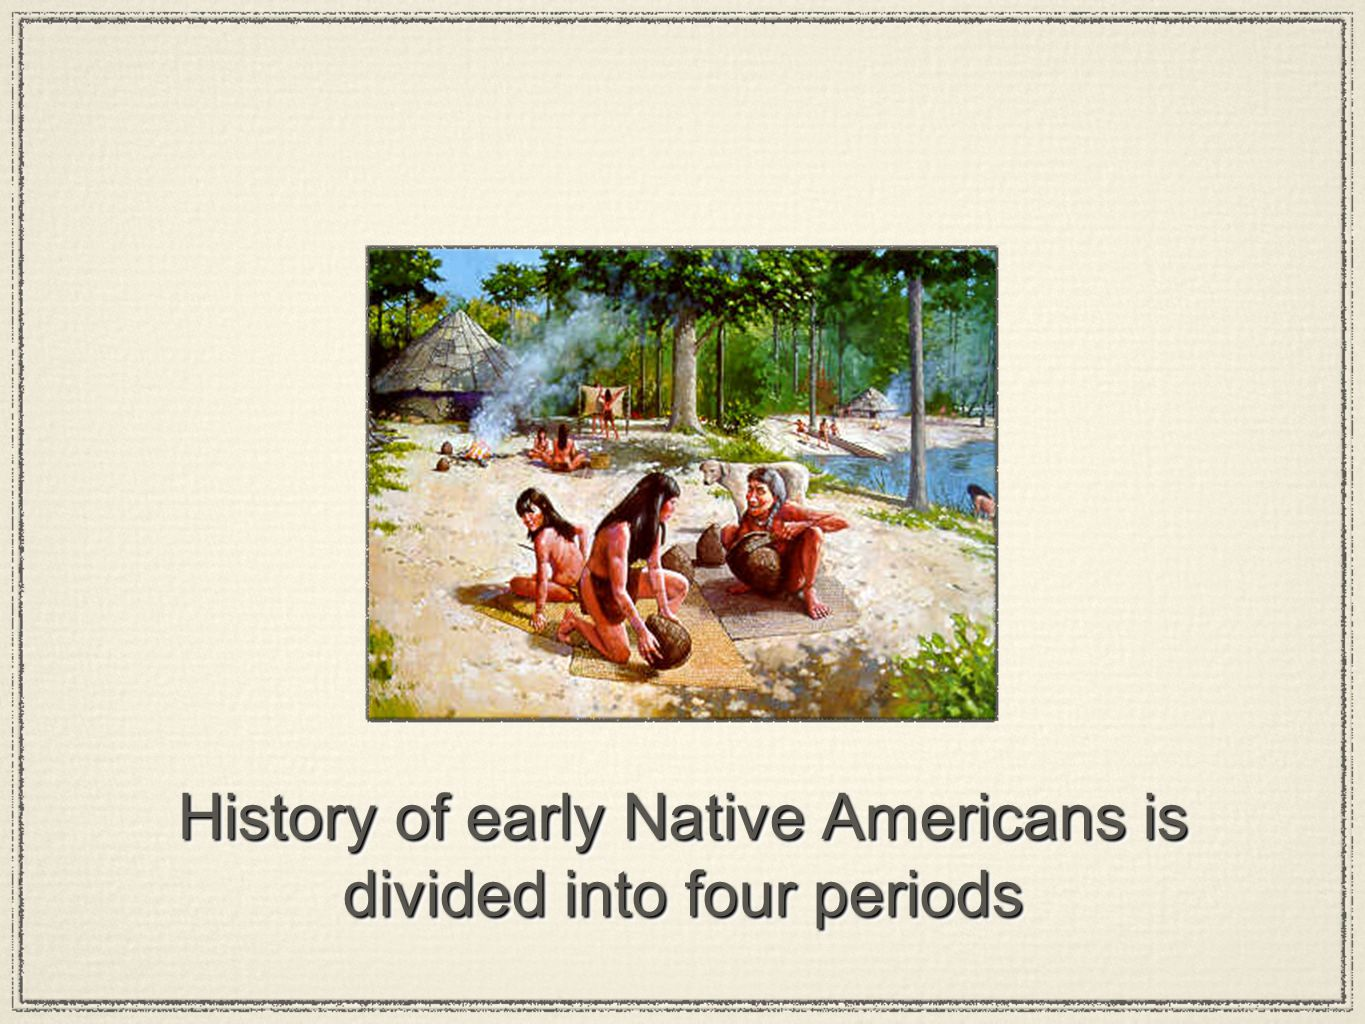 History of early Native Americans is divided into four periods